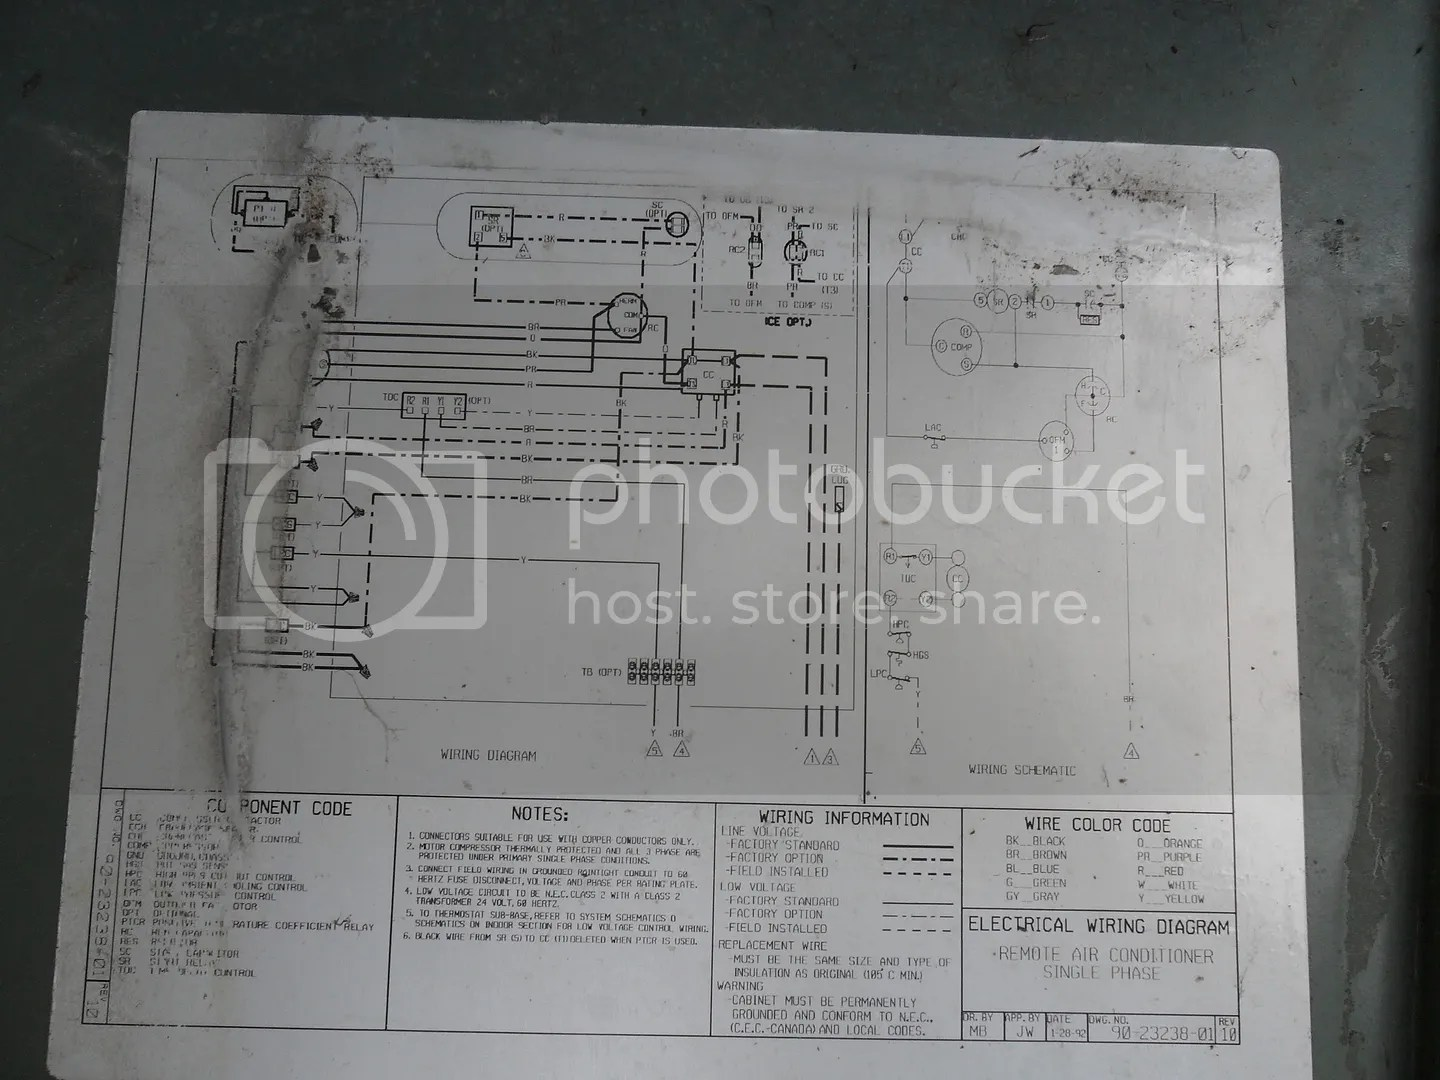 rheem air conditioner thermostat wiring diagram ge refrigerator electrical 47